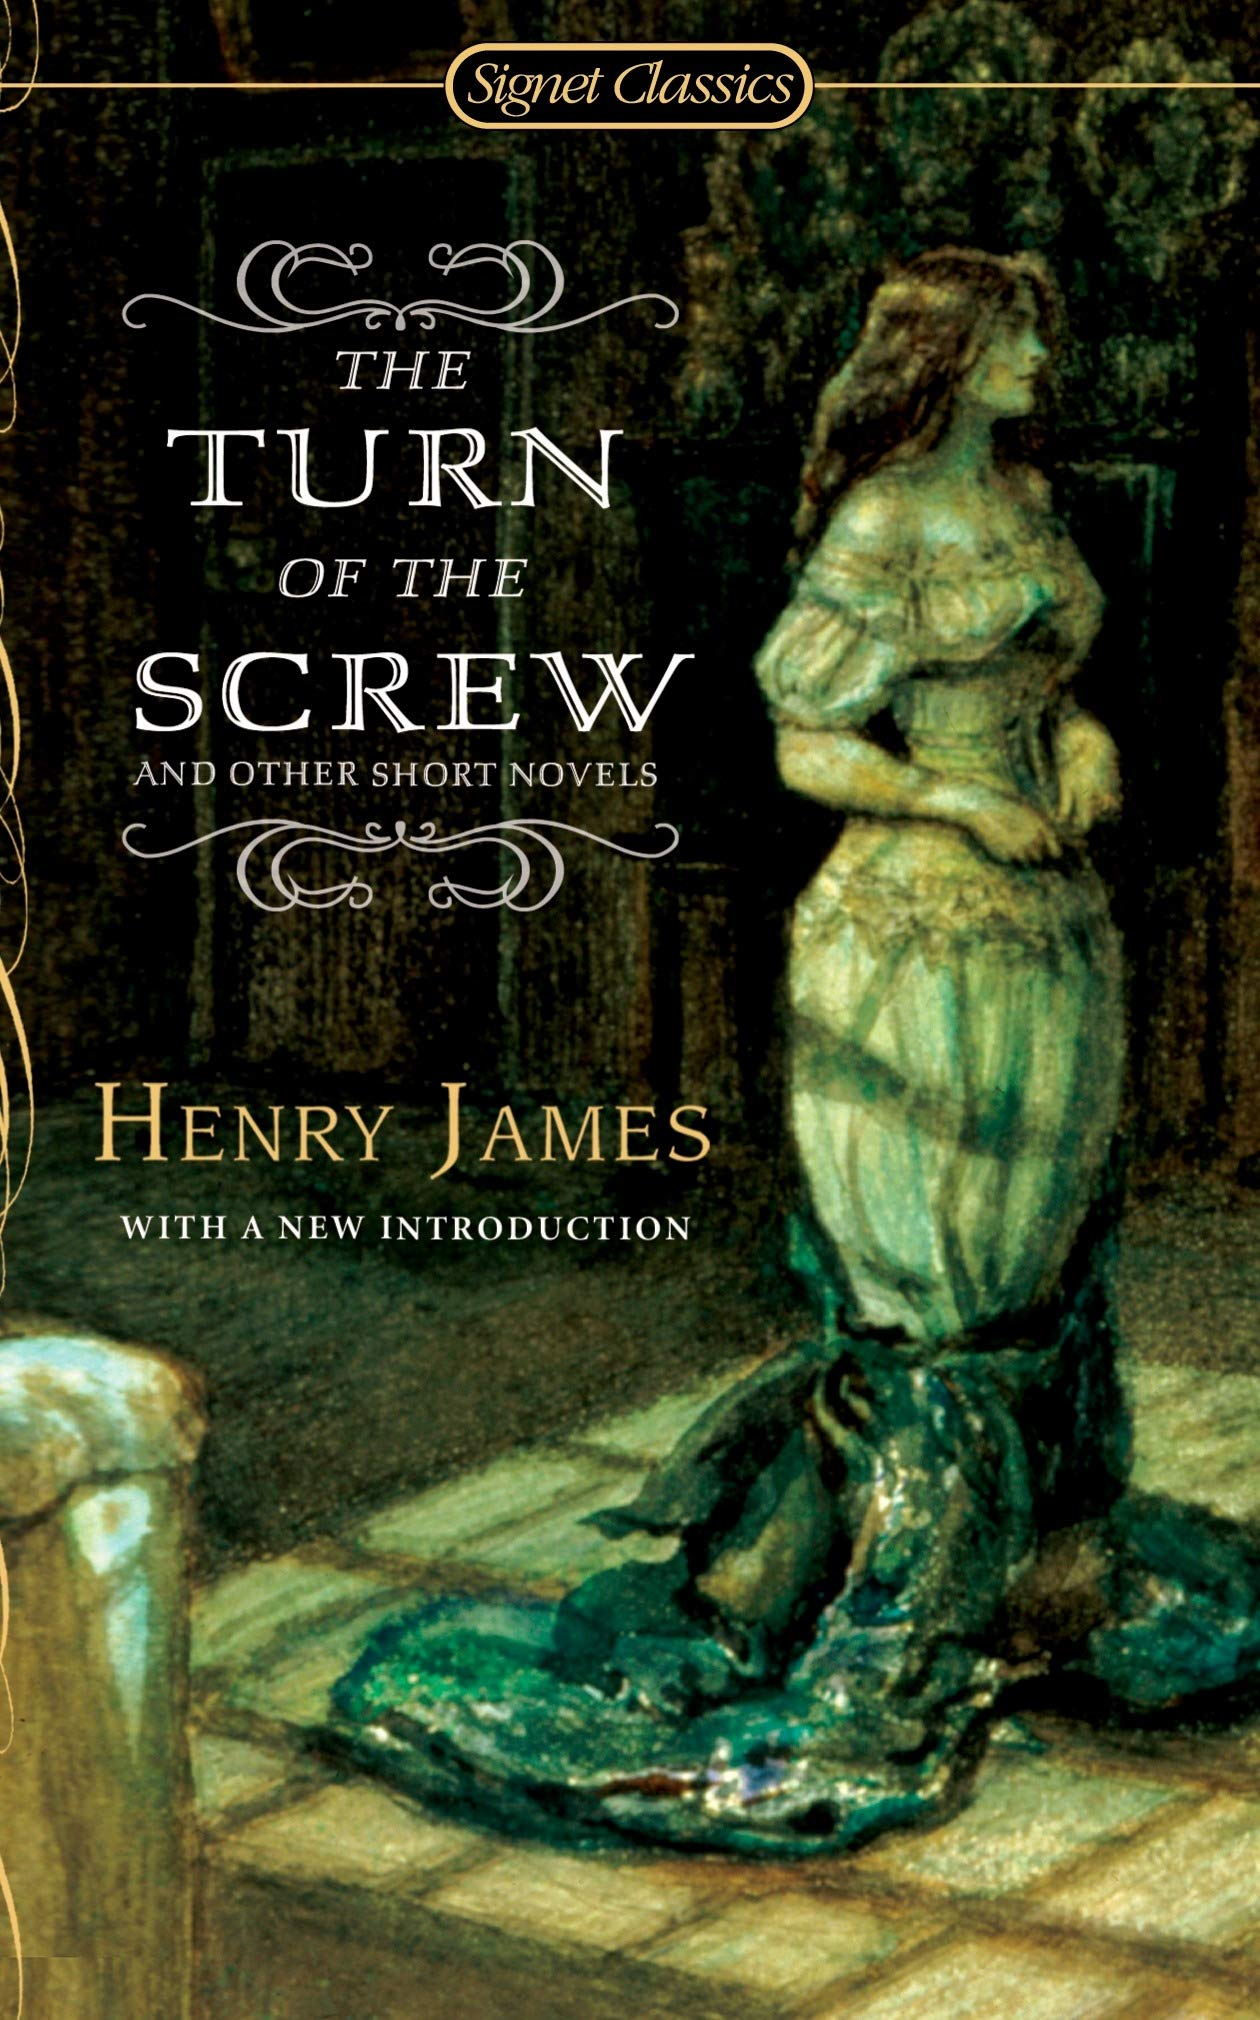 Amazon Com The Turn Of The Screw And Other Short Novels Signet Classics 9780451530677 James Henry Kaplan Fred Books